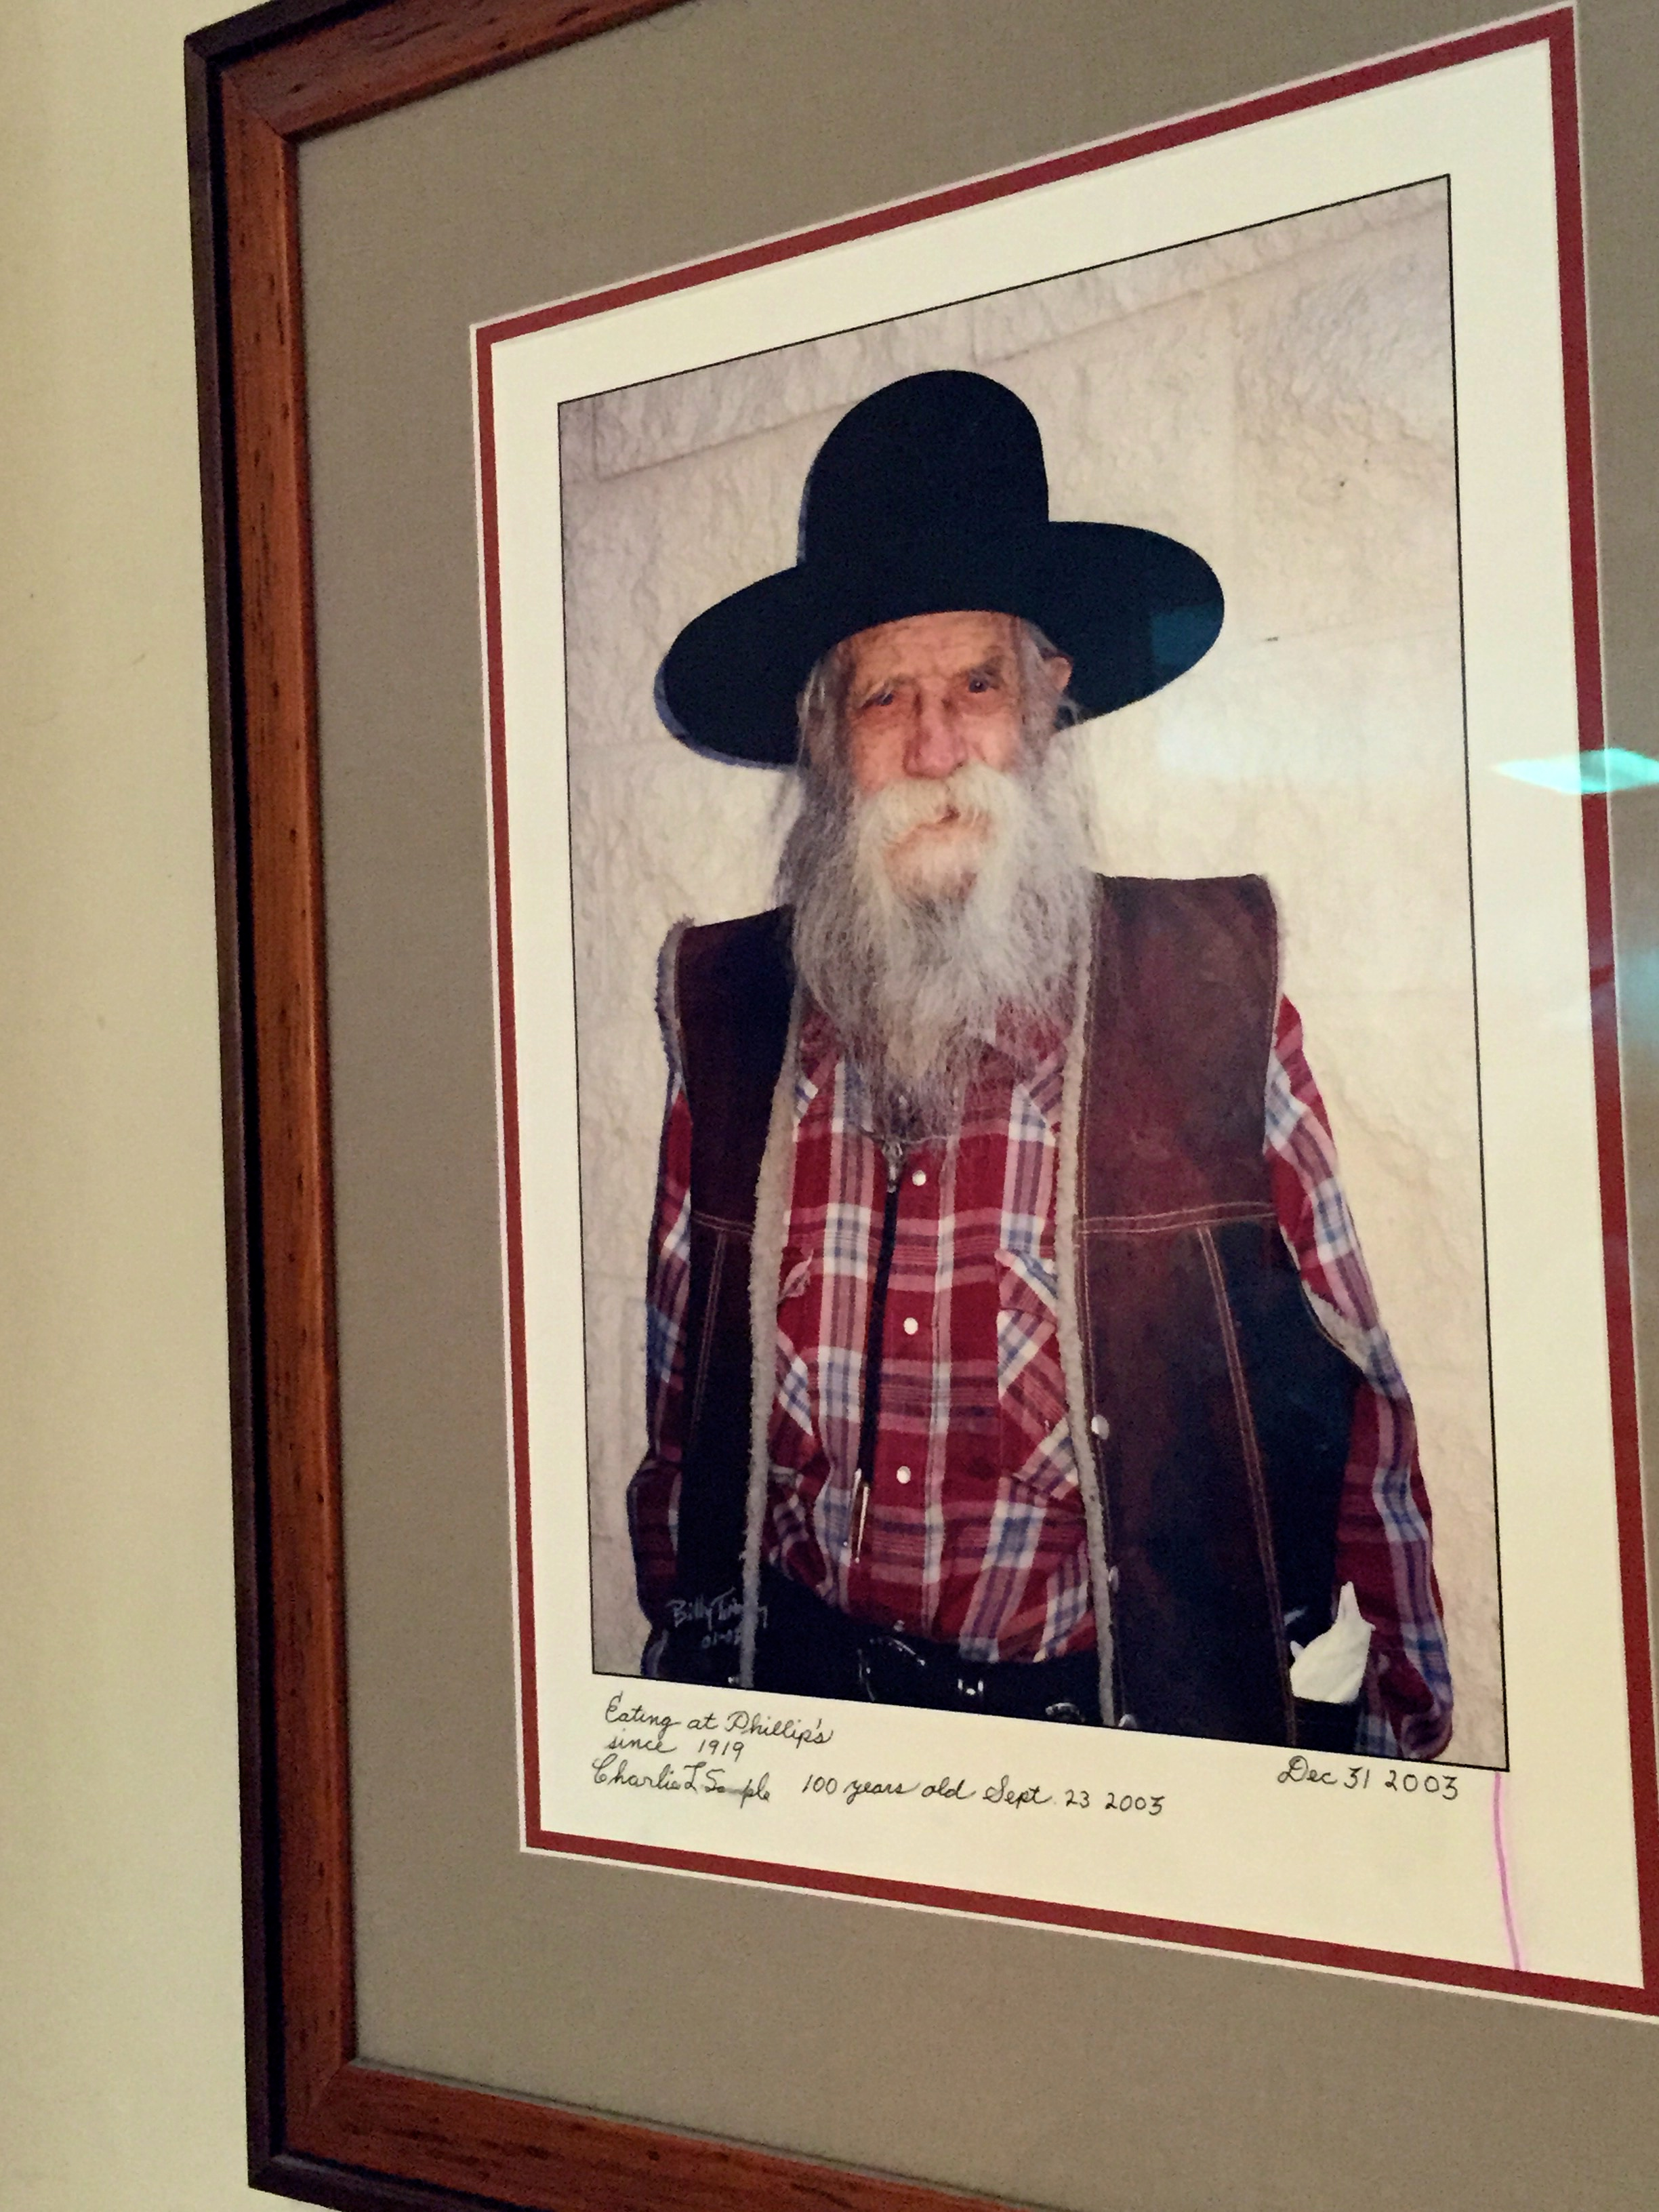 """""""Eating at Philippe's since 1919. Charlie L. Sample. 100 years old Sept 23, 2003."""""""